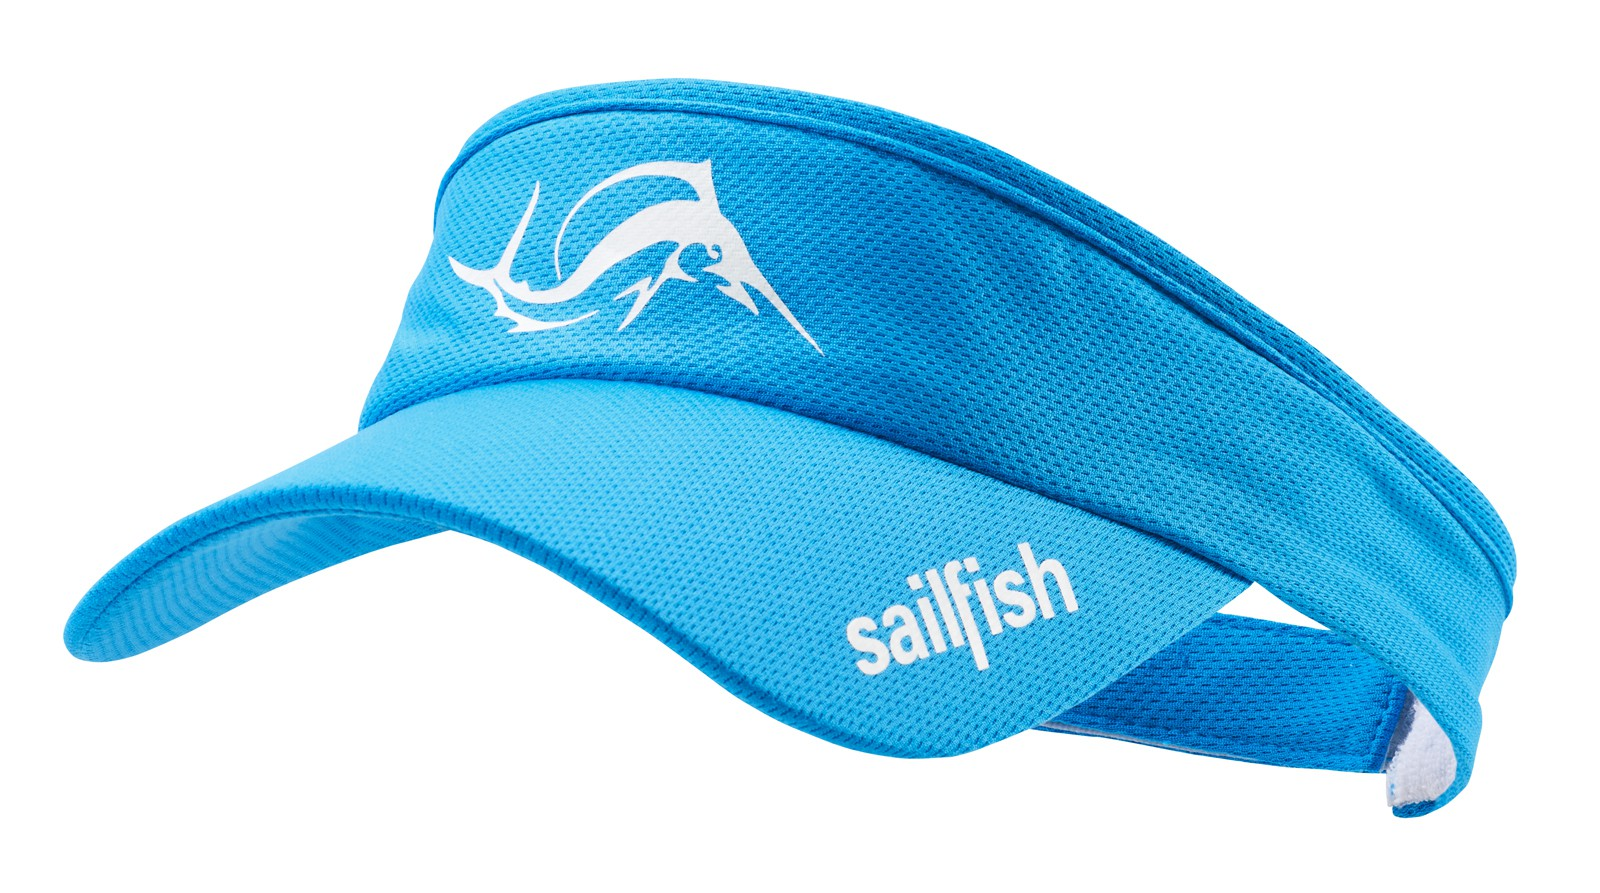 sailfish - Running visor - modrý